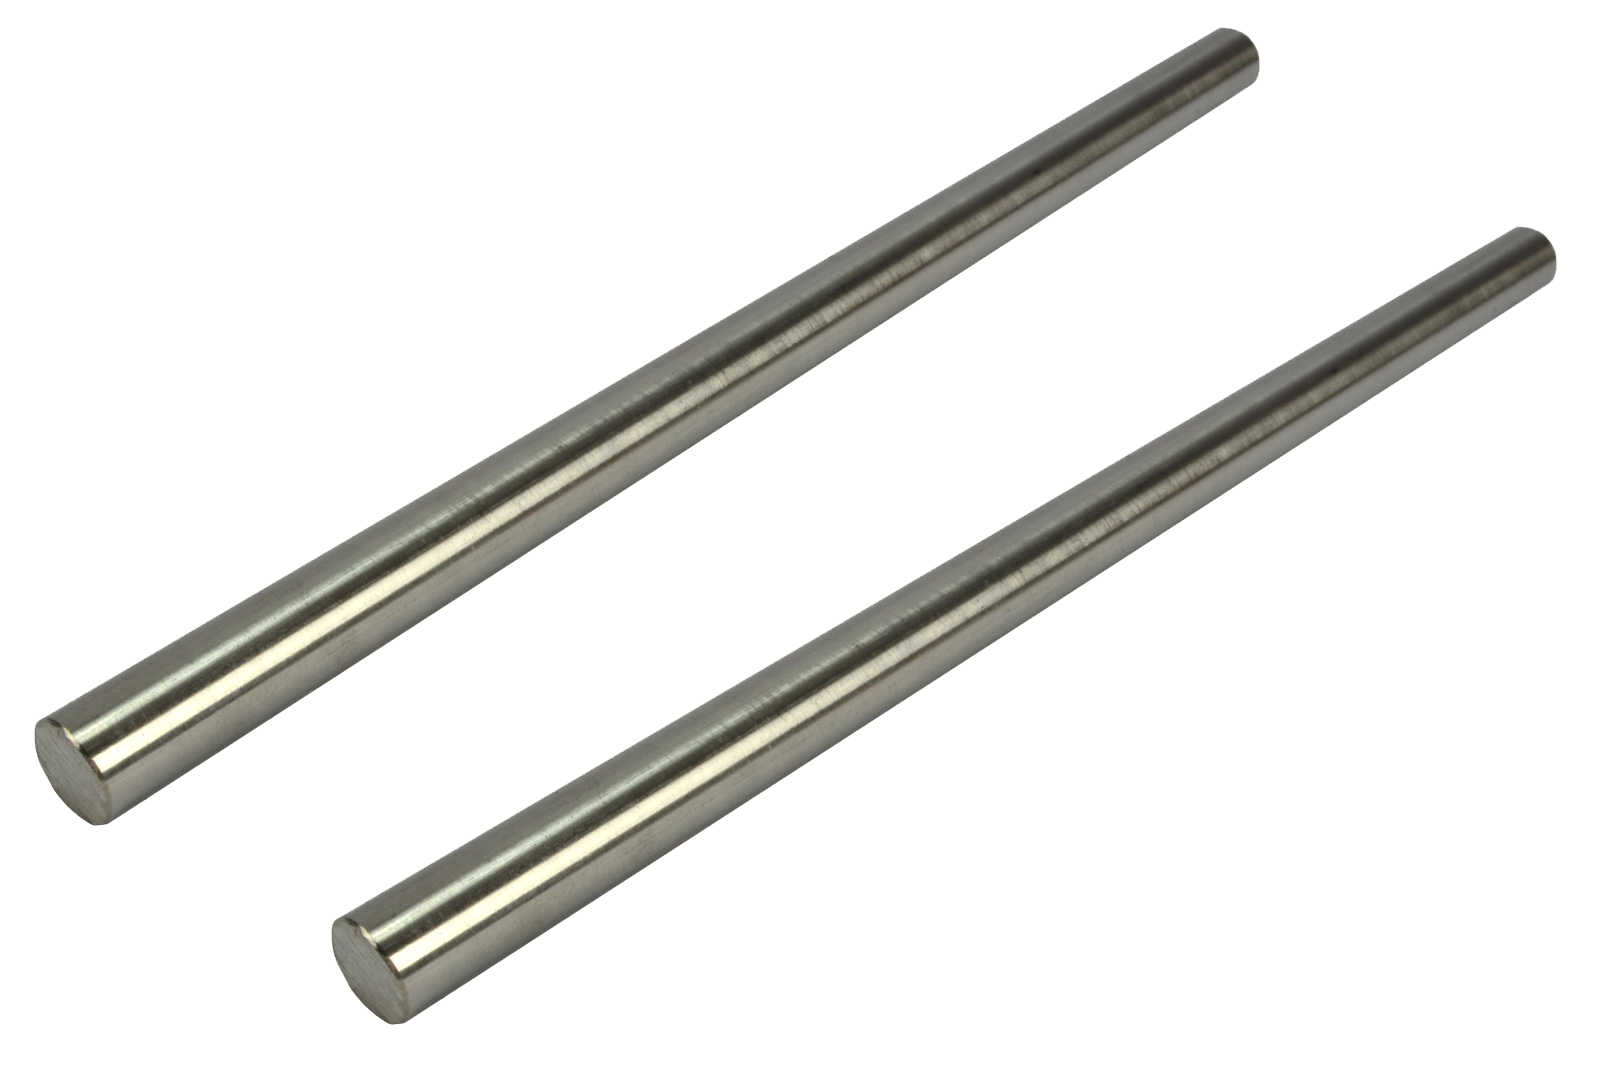 2x 1 2 Inch Dia 12 Long 304 Stainless Steel Round Bar Lathe Ss Rod Stock 50